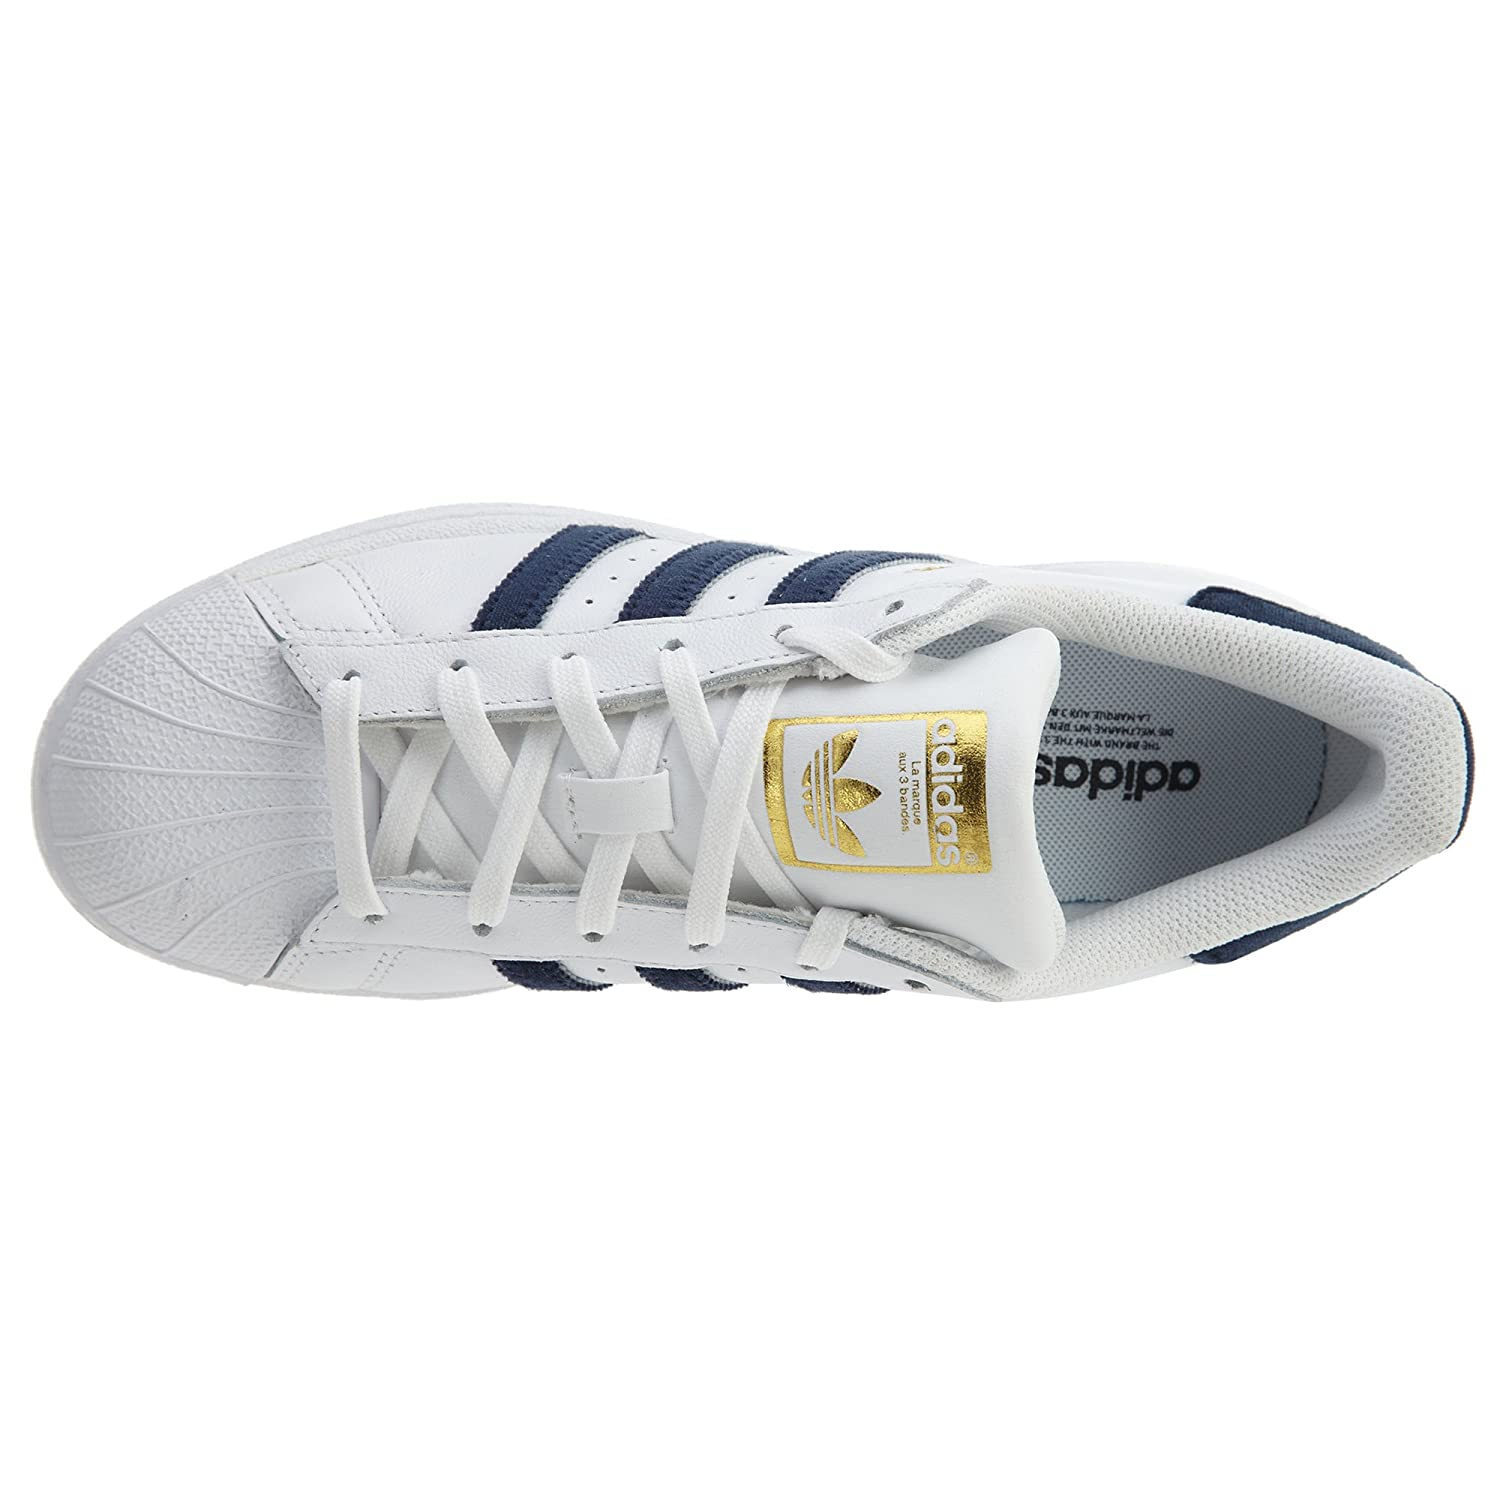 Adidas-Superstar-Women-039-s-Fashion-Casual-Sneakers-Athletic-Shoes-Originals thumbnail 30